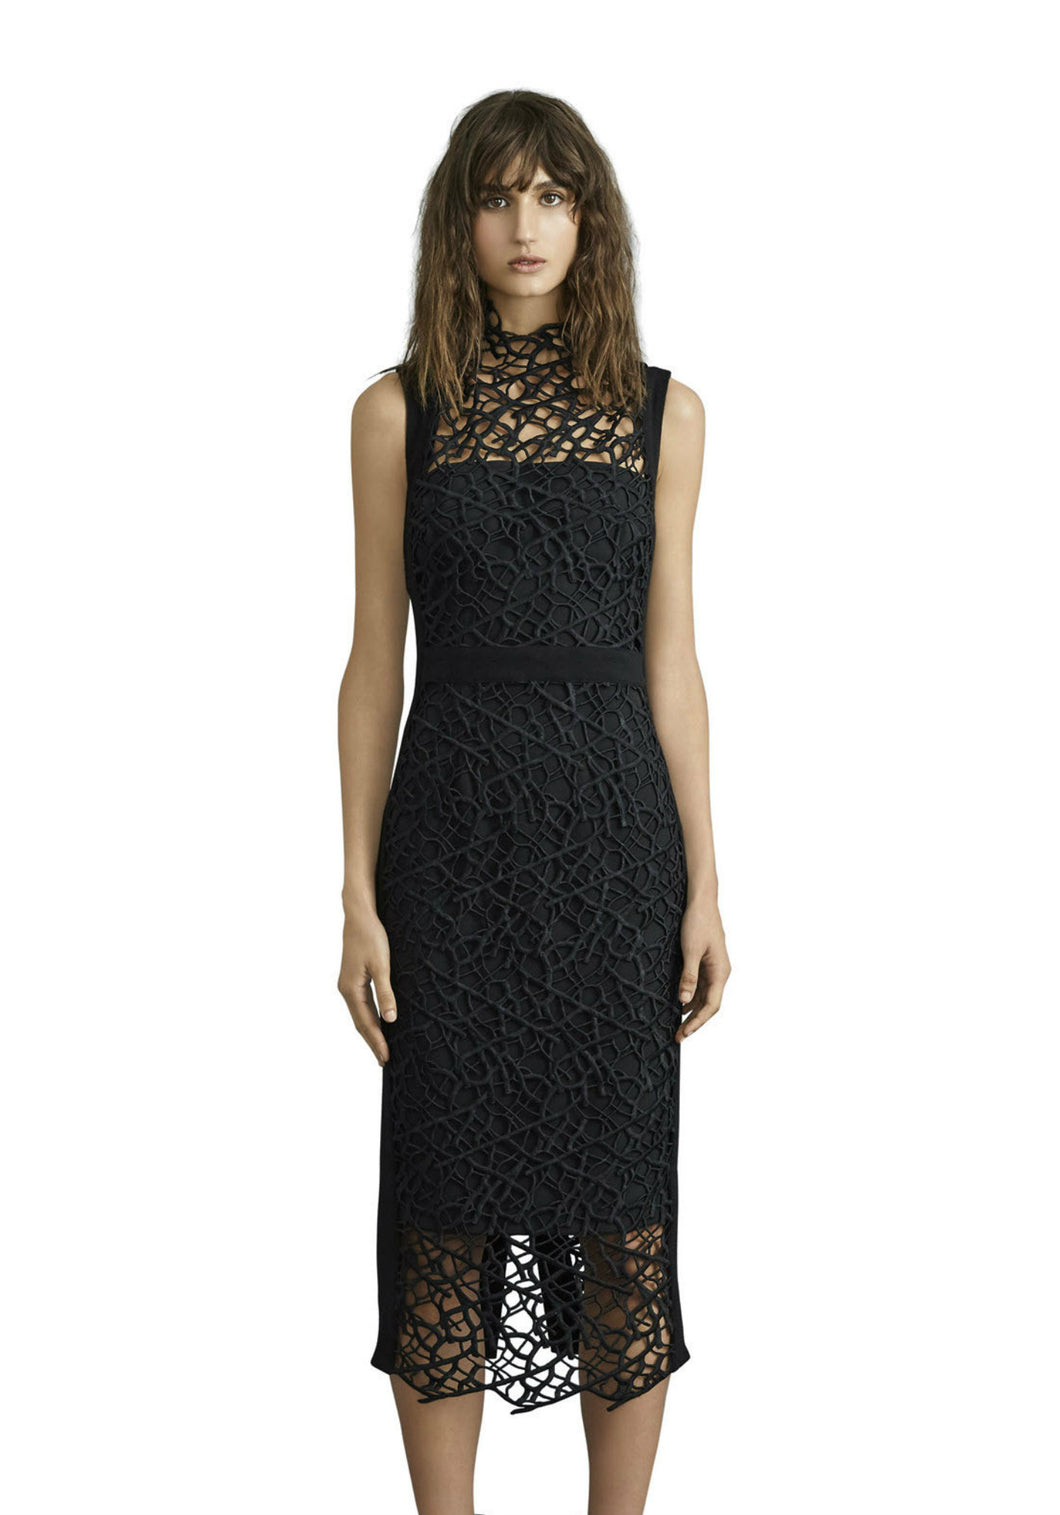 SOPHIA LACE MIDI DRESS - Black